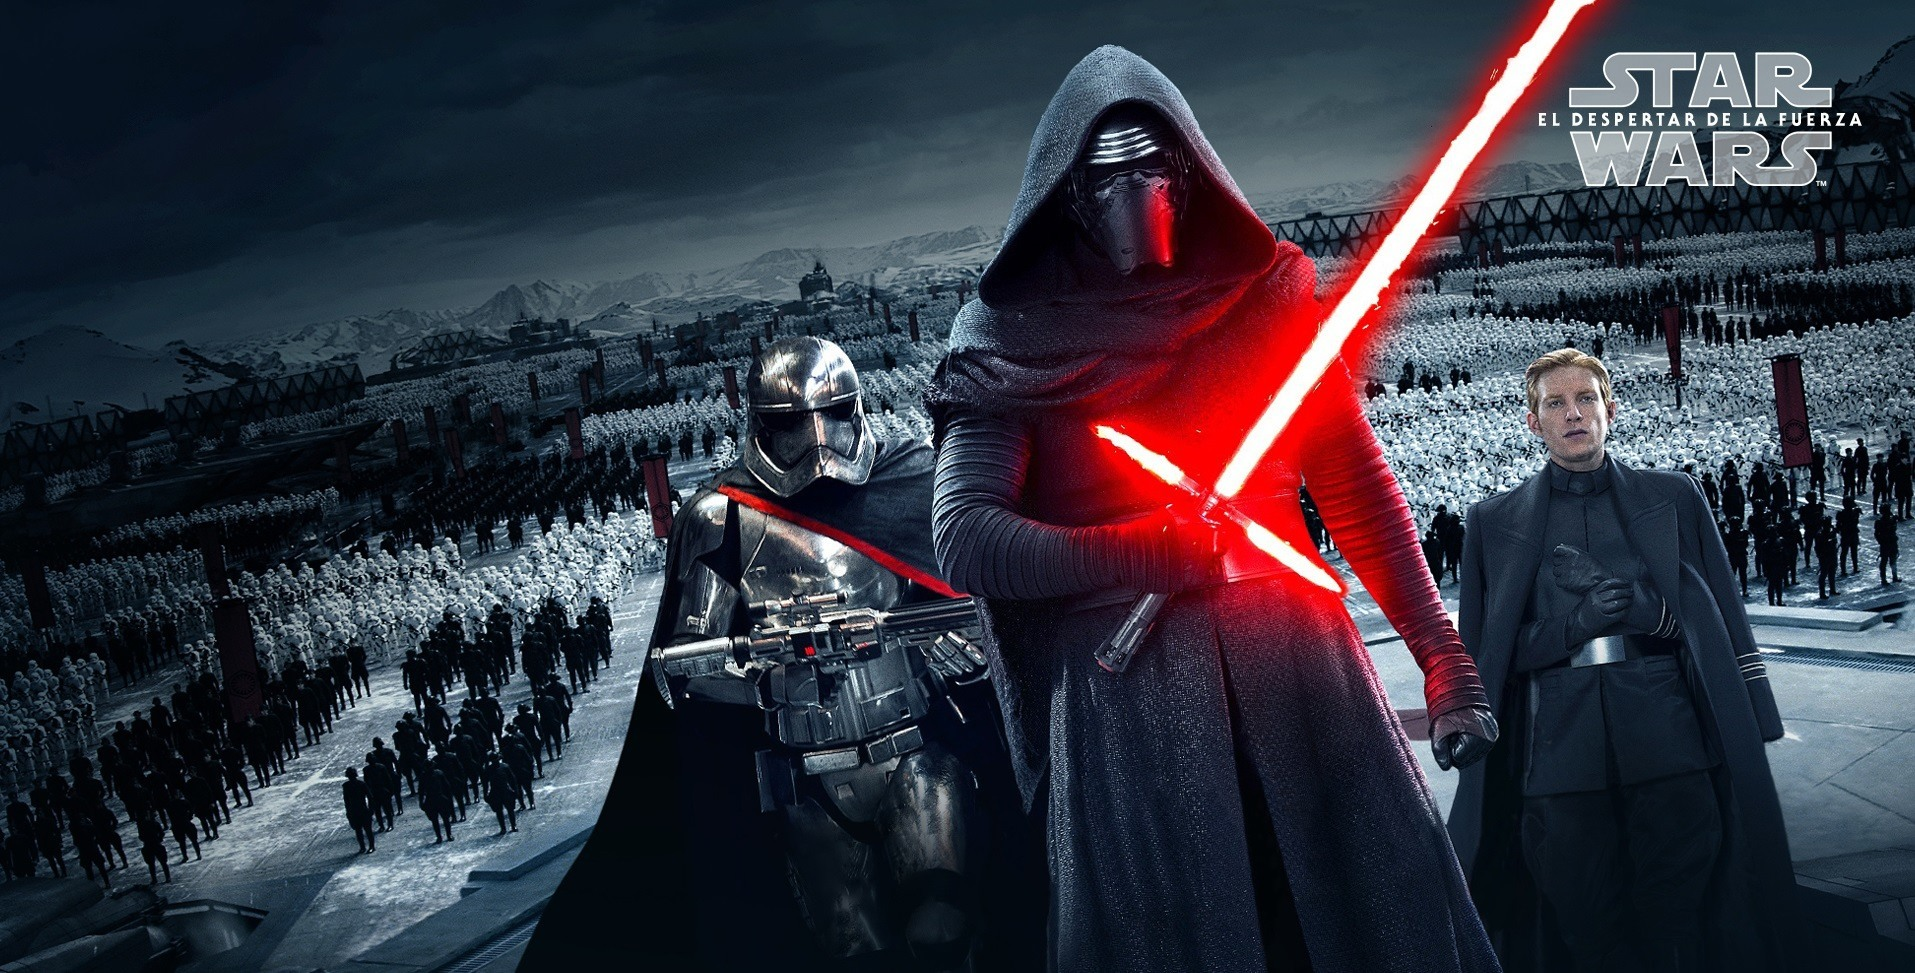 star wars the force awakens keeps holiday box office magic alive 2015 images